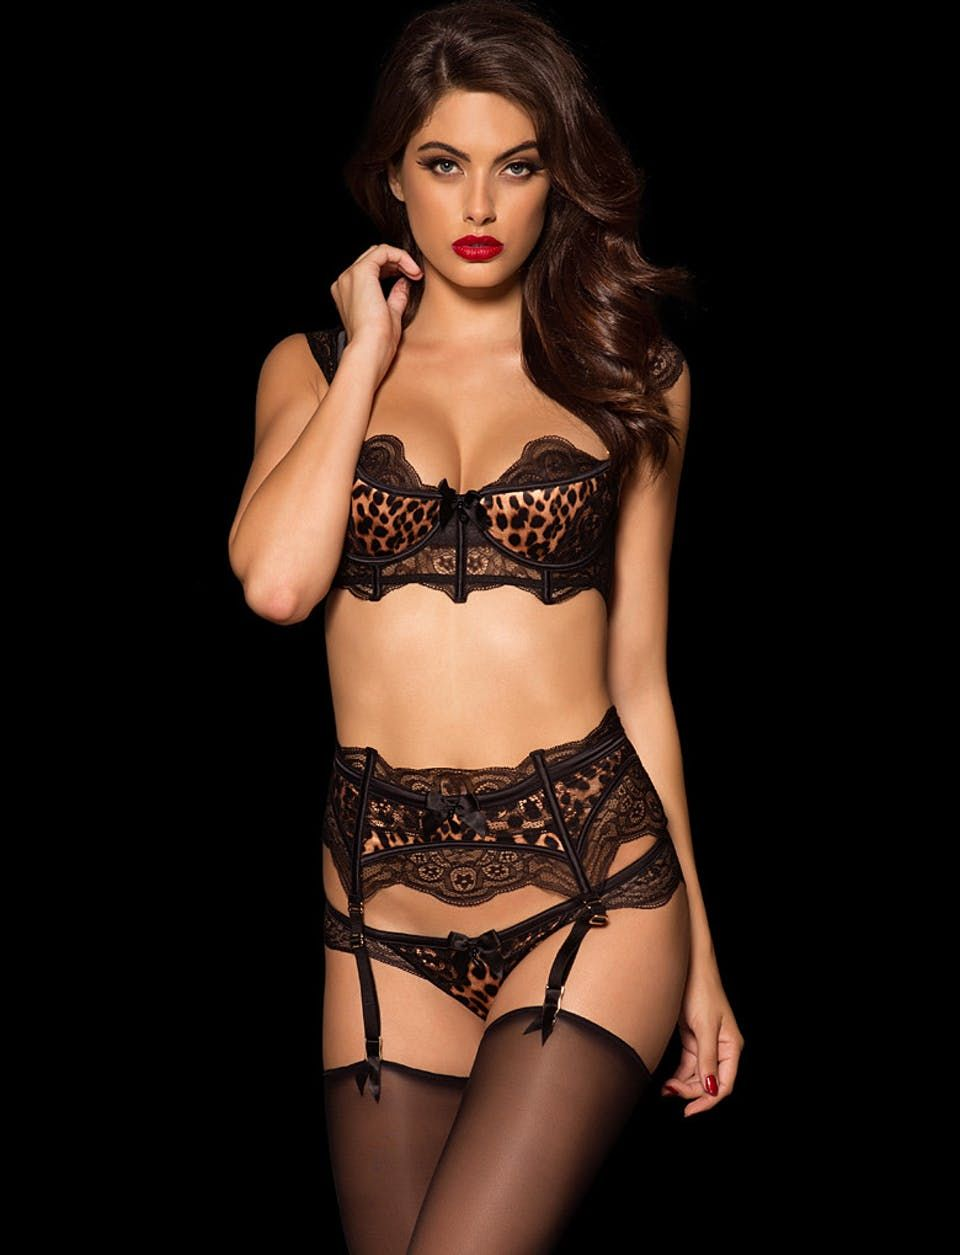 68772e3451f57 Honey Birdette Dolce Leo Brief Suspender Set | LINGERIE | Lingerie ...